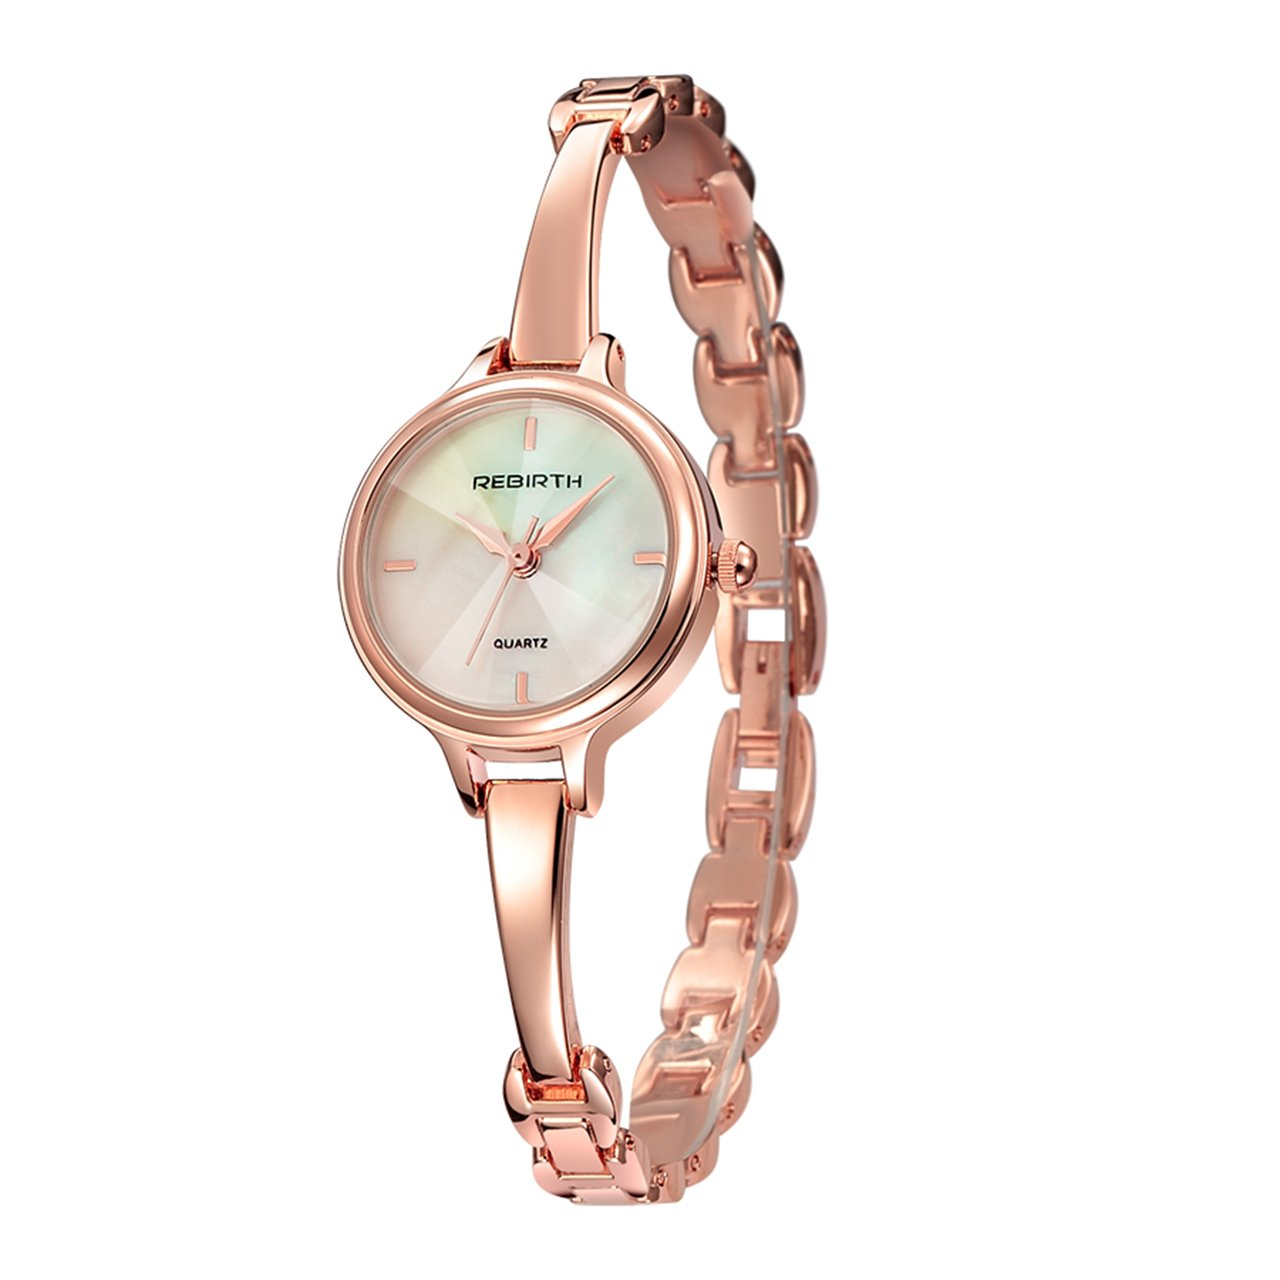 Top Plaza Womens Elegant Rose Gold Luxury Dress Bracelet Cuff Bangle Wrist Watch Analog Quartz 3 ATM Waterproof(White Dial)